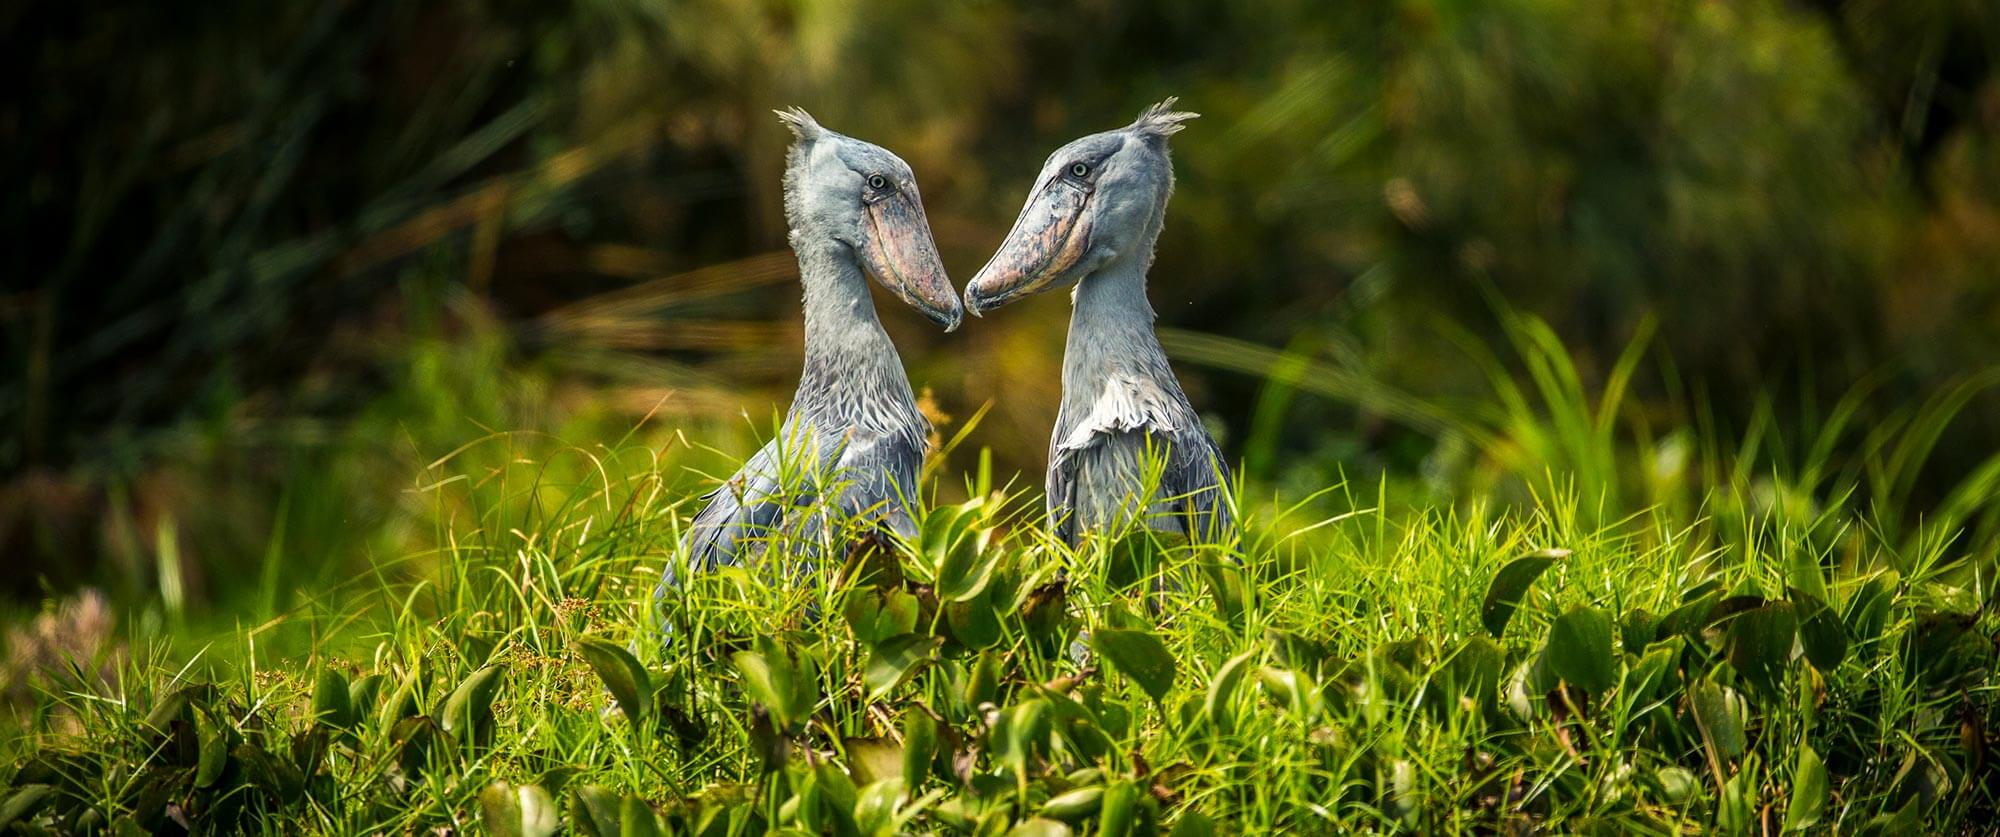 Shoebills - Murchison Falls Safari - Ugandan Adventure: Gorilla Safari Tour